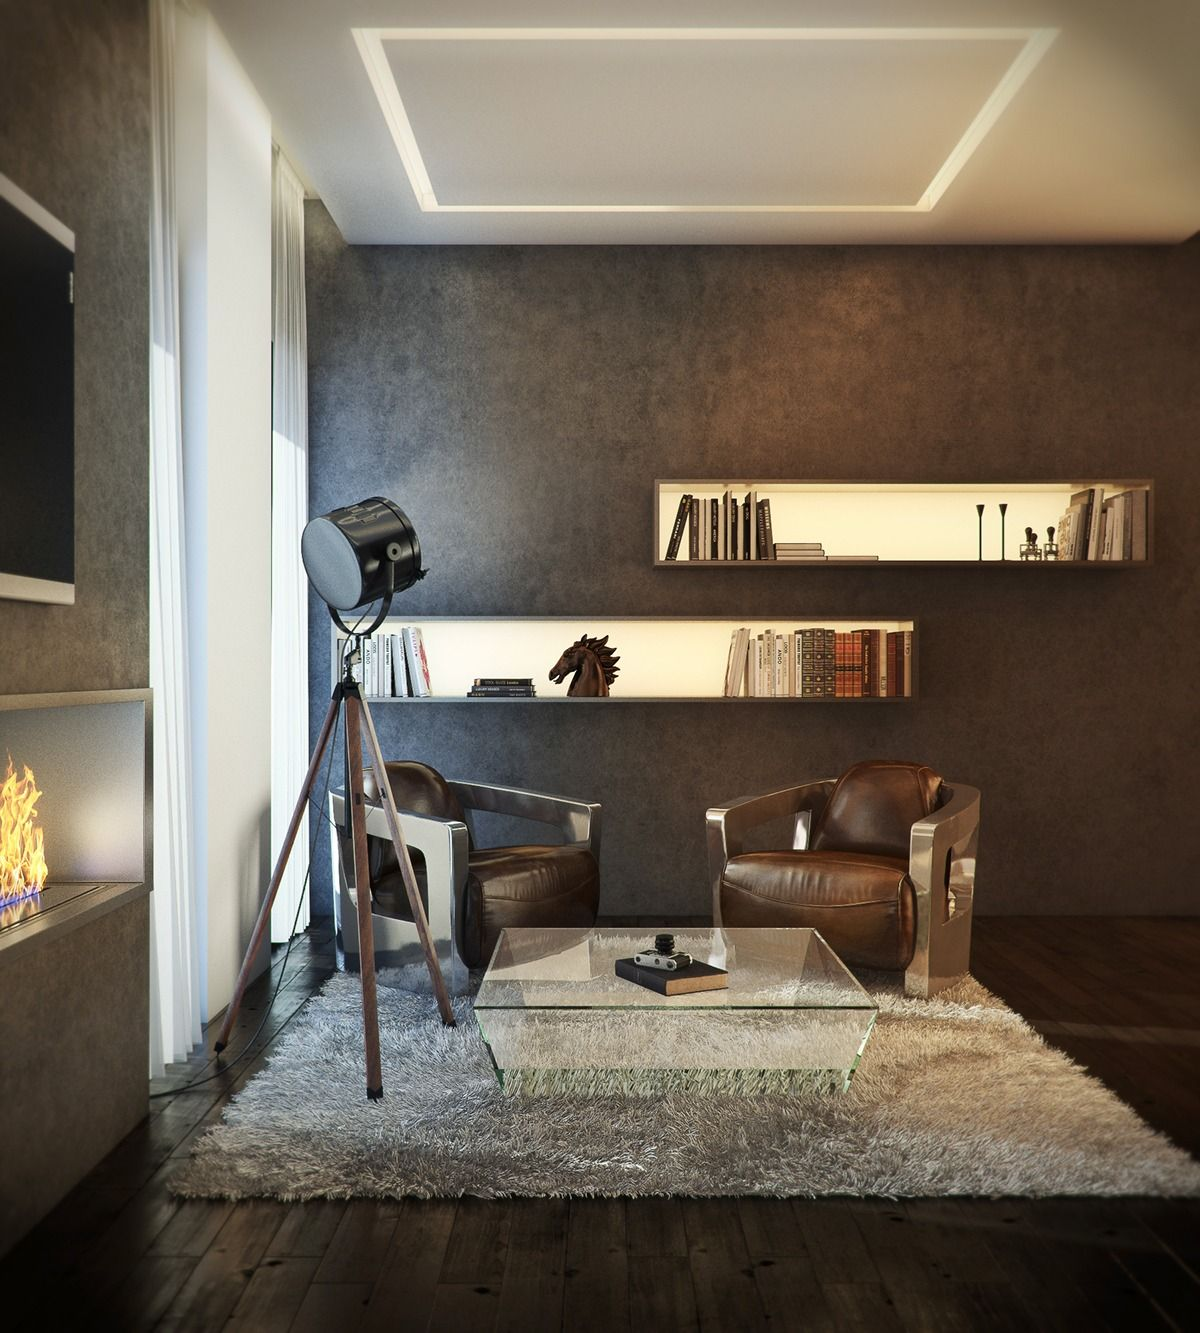 Ultra luxury apartment design idées pour la maison penthouse de luxe appartements de luxe